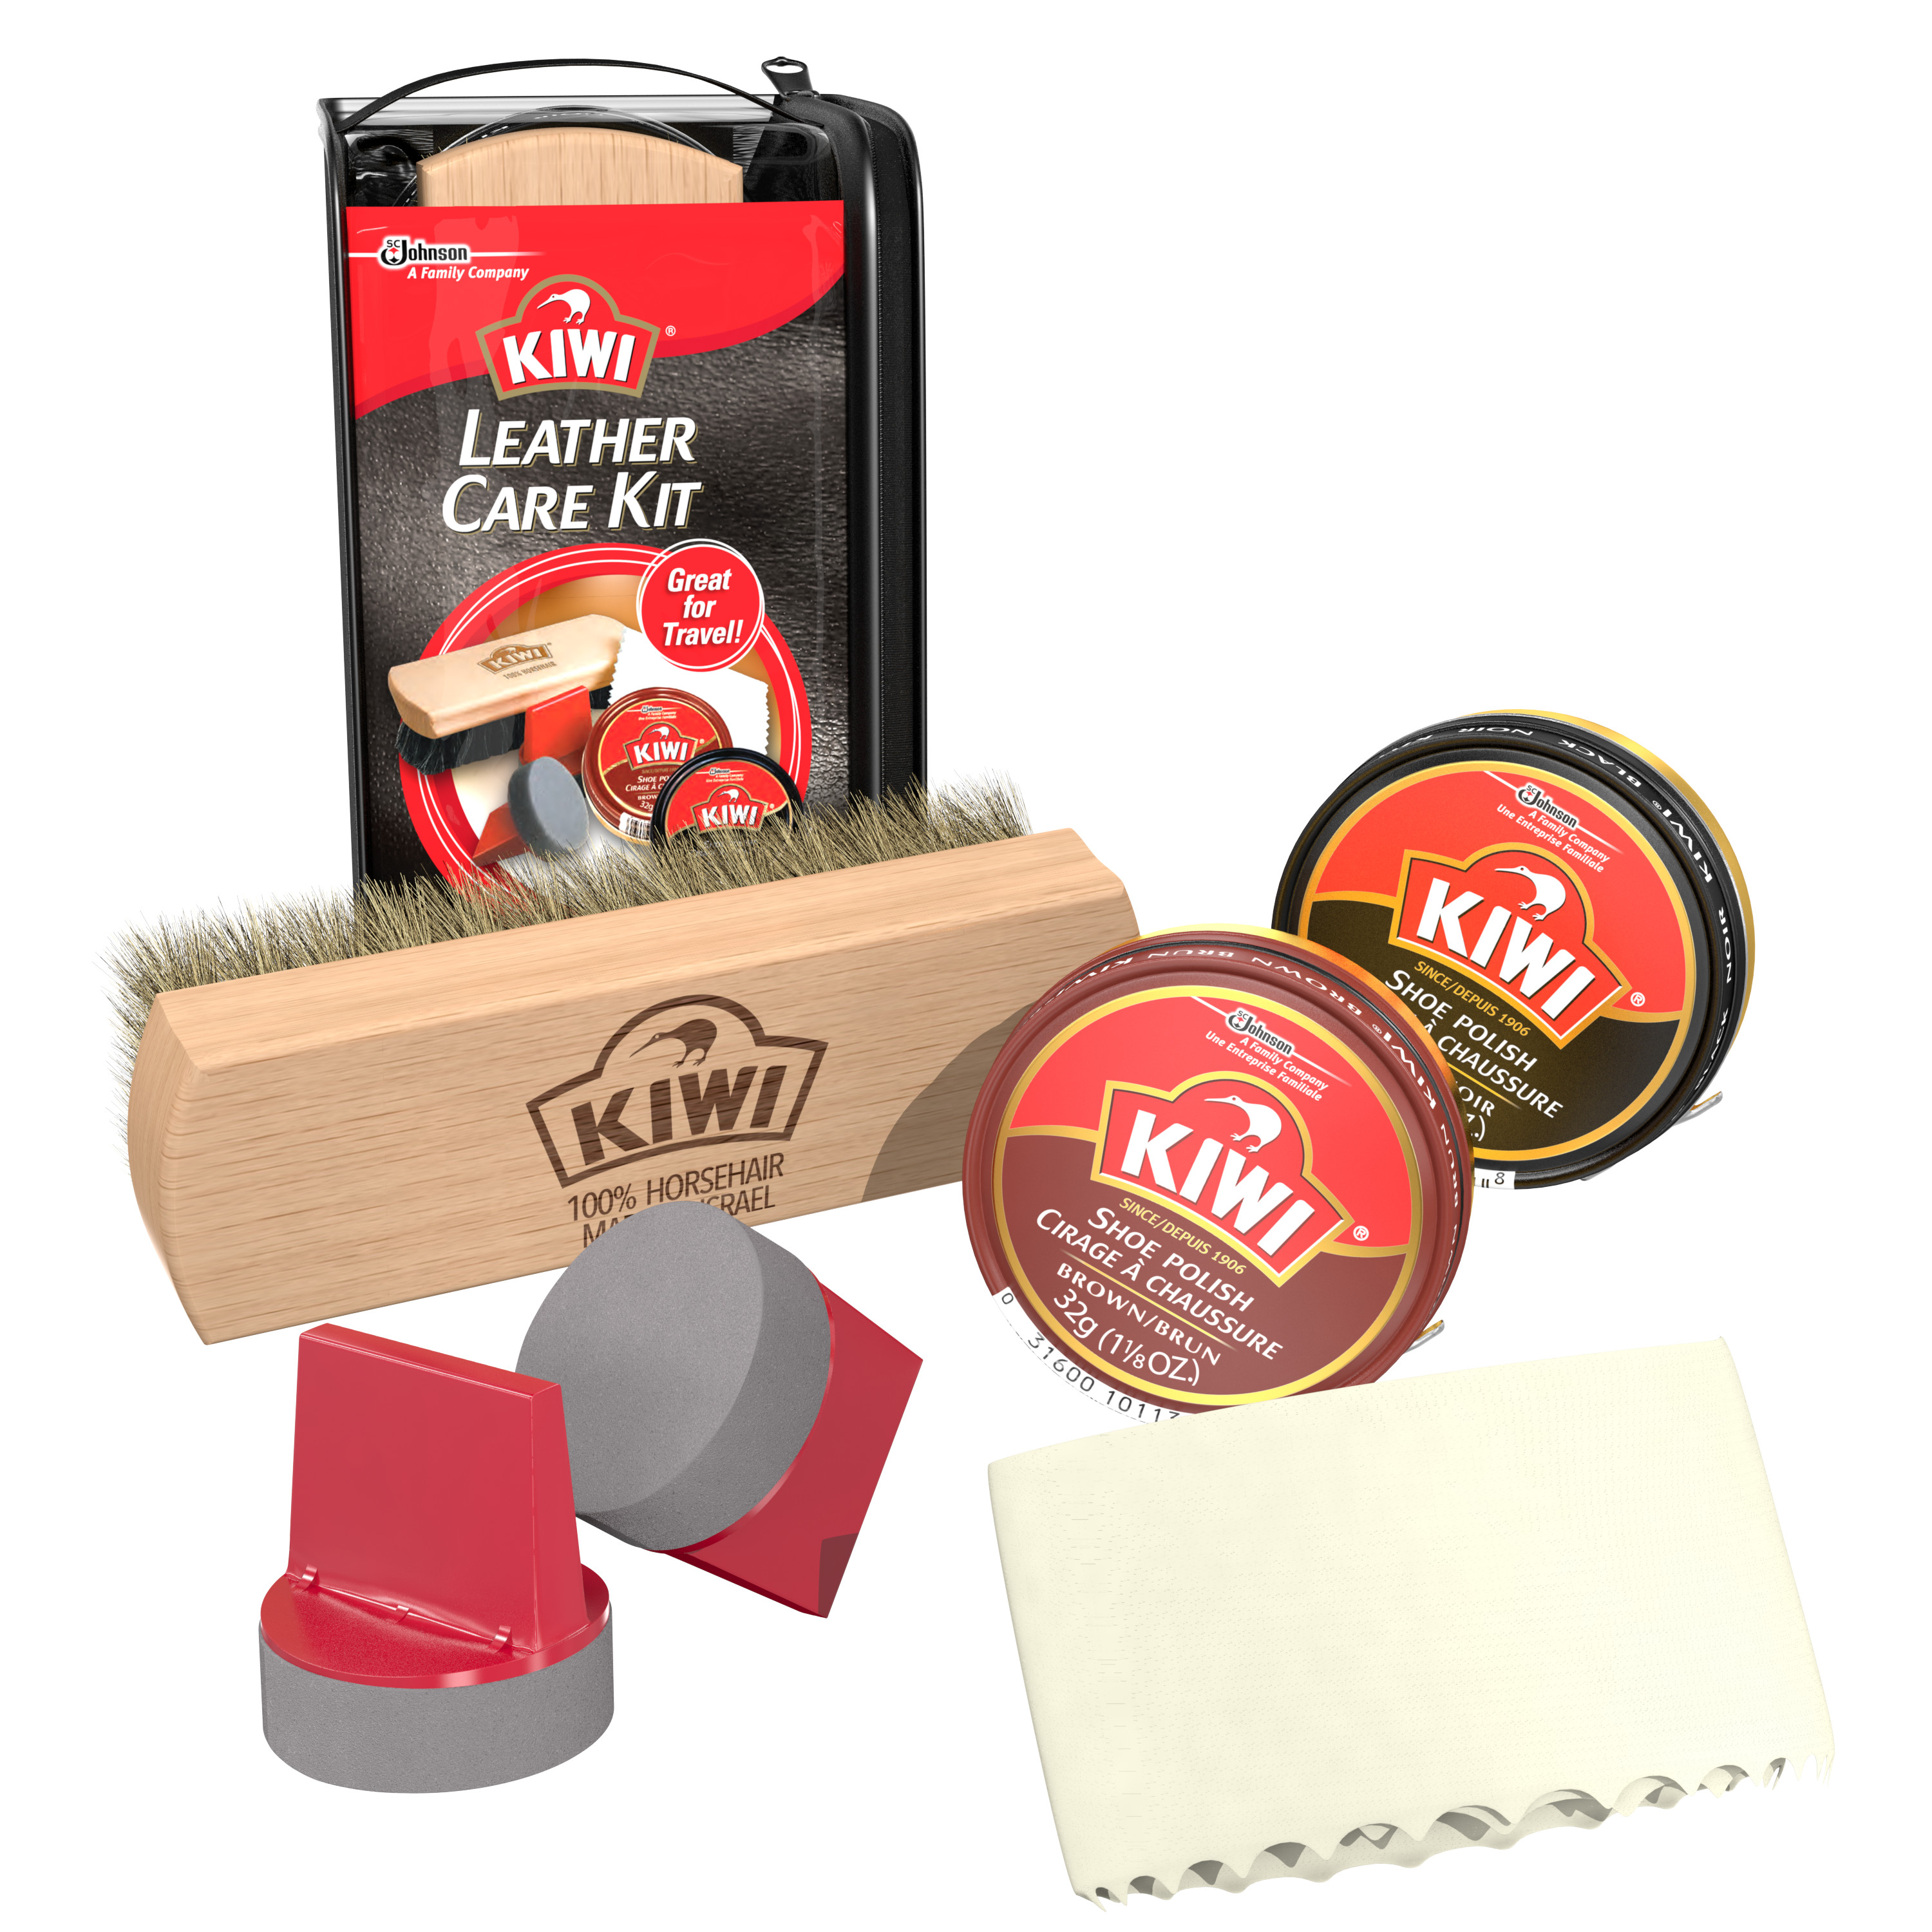 KIWI Leather Care Kit